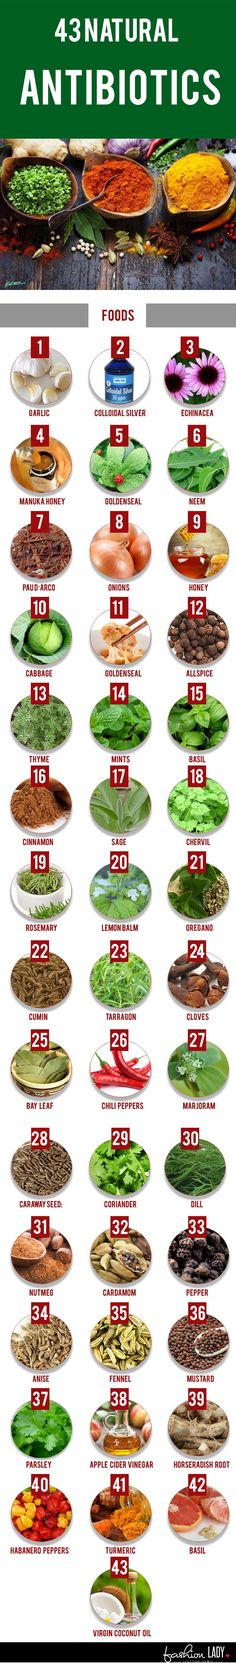 43 Natural Antibiotics #survivalmedicine